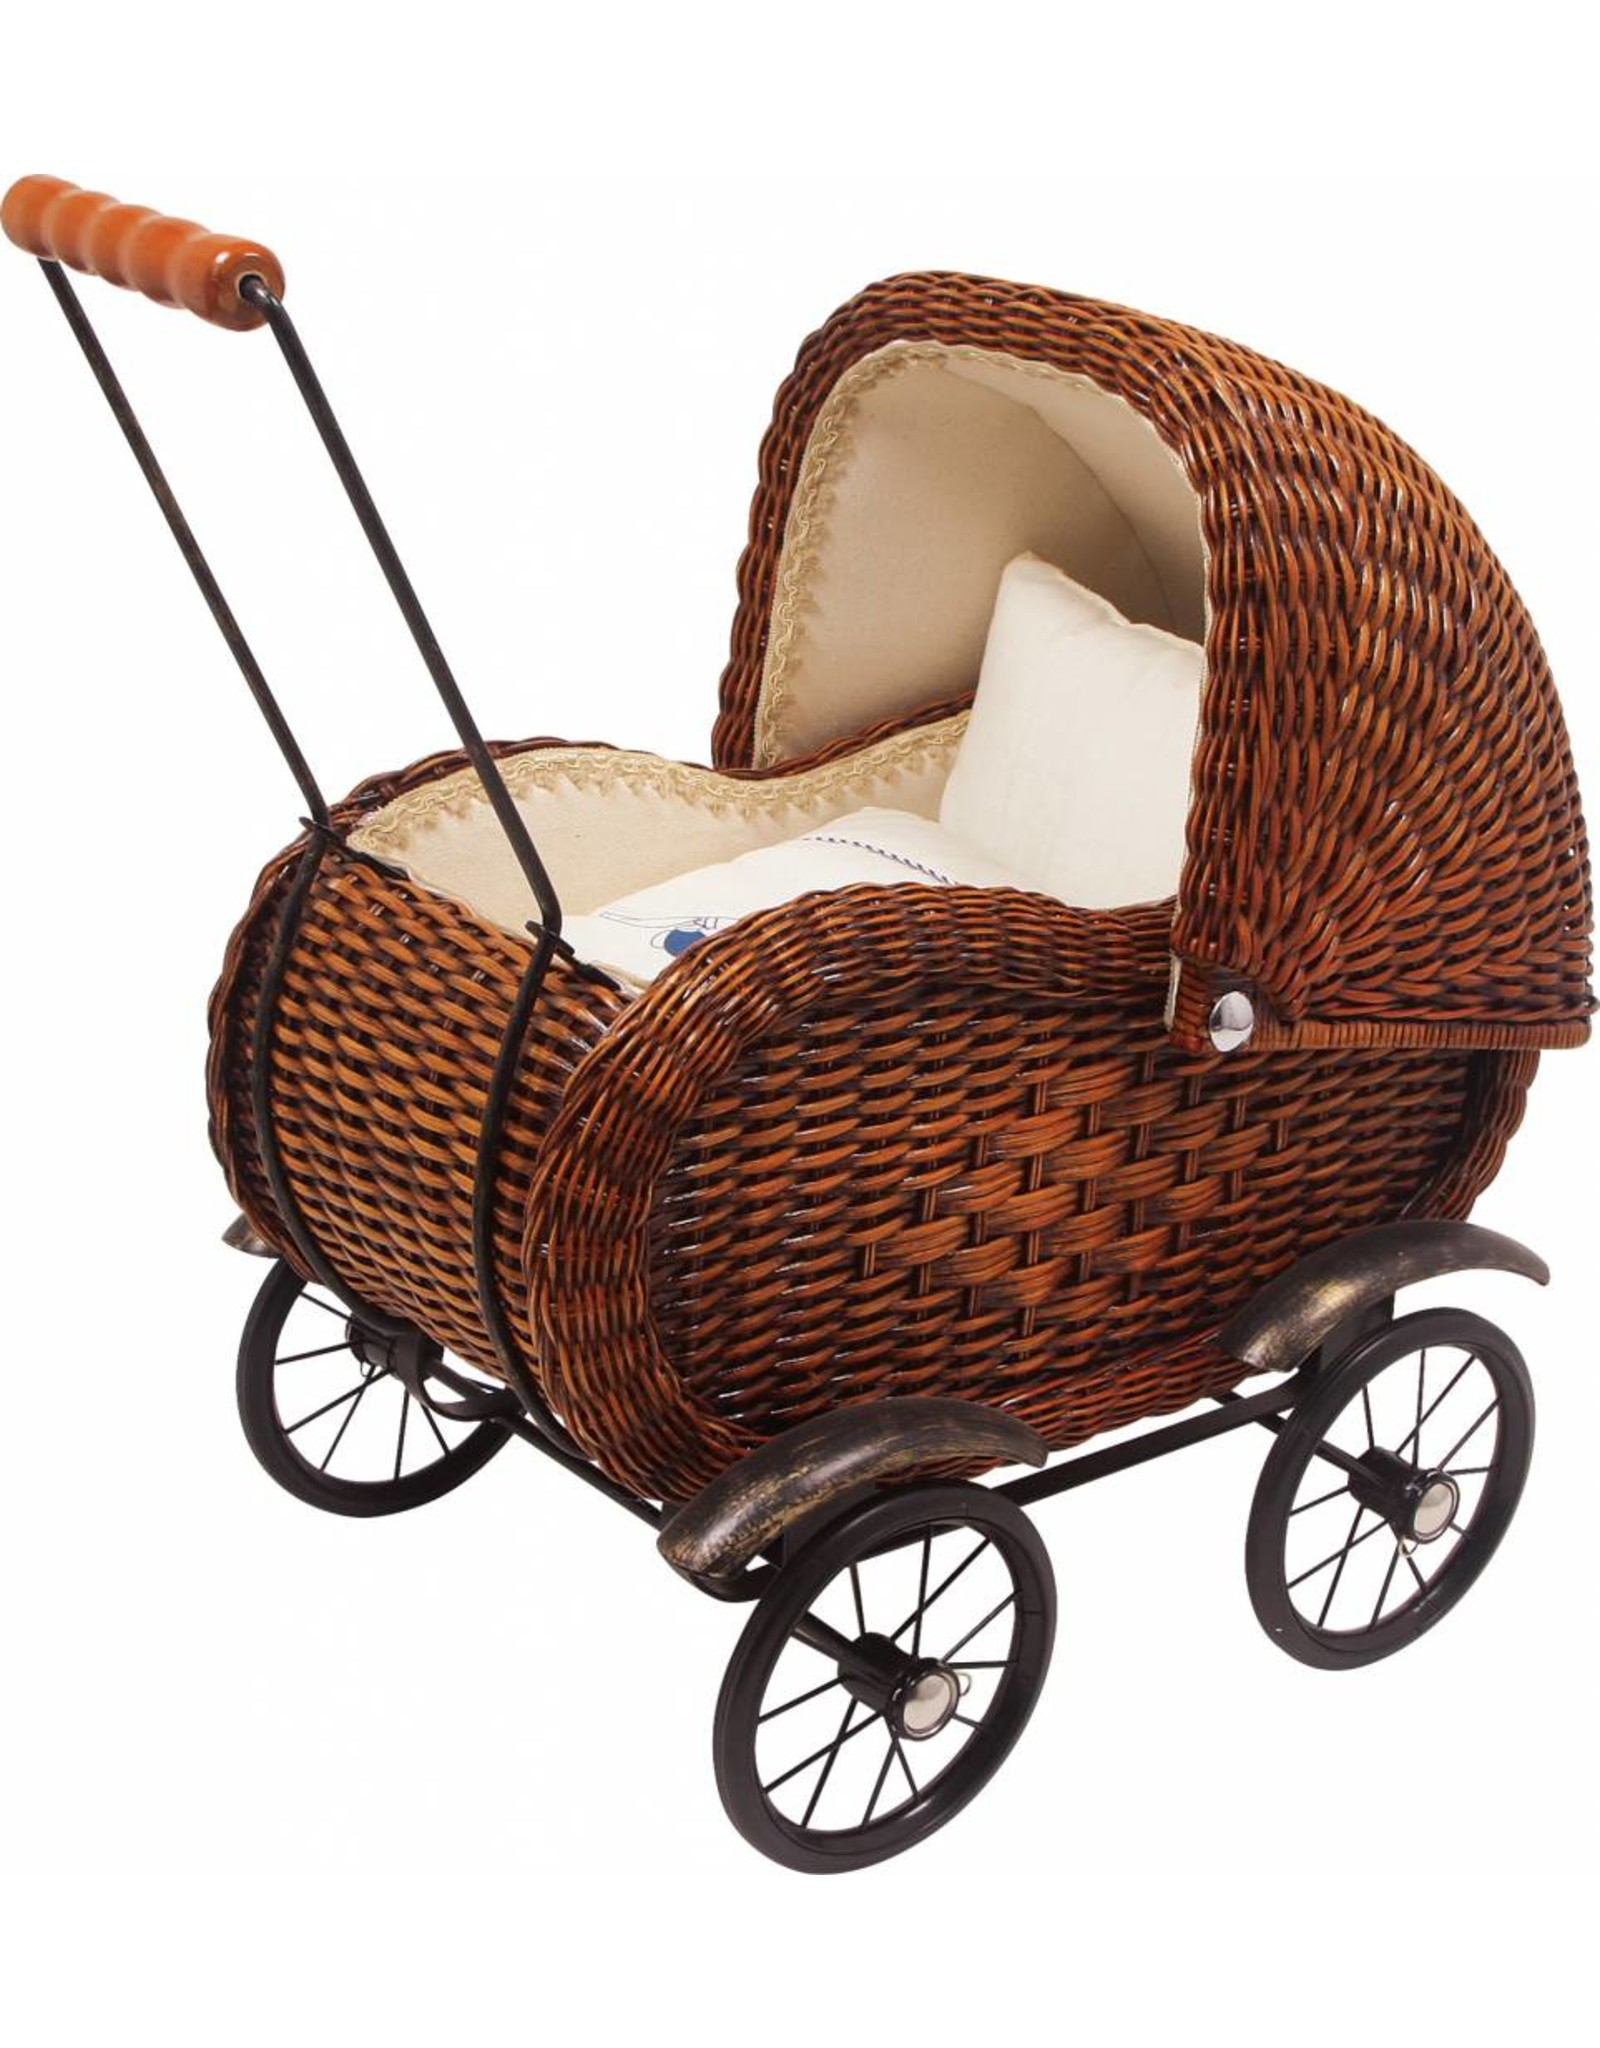 Vintage Brown Wicker Doll's Pram